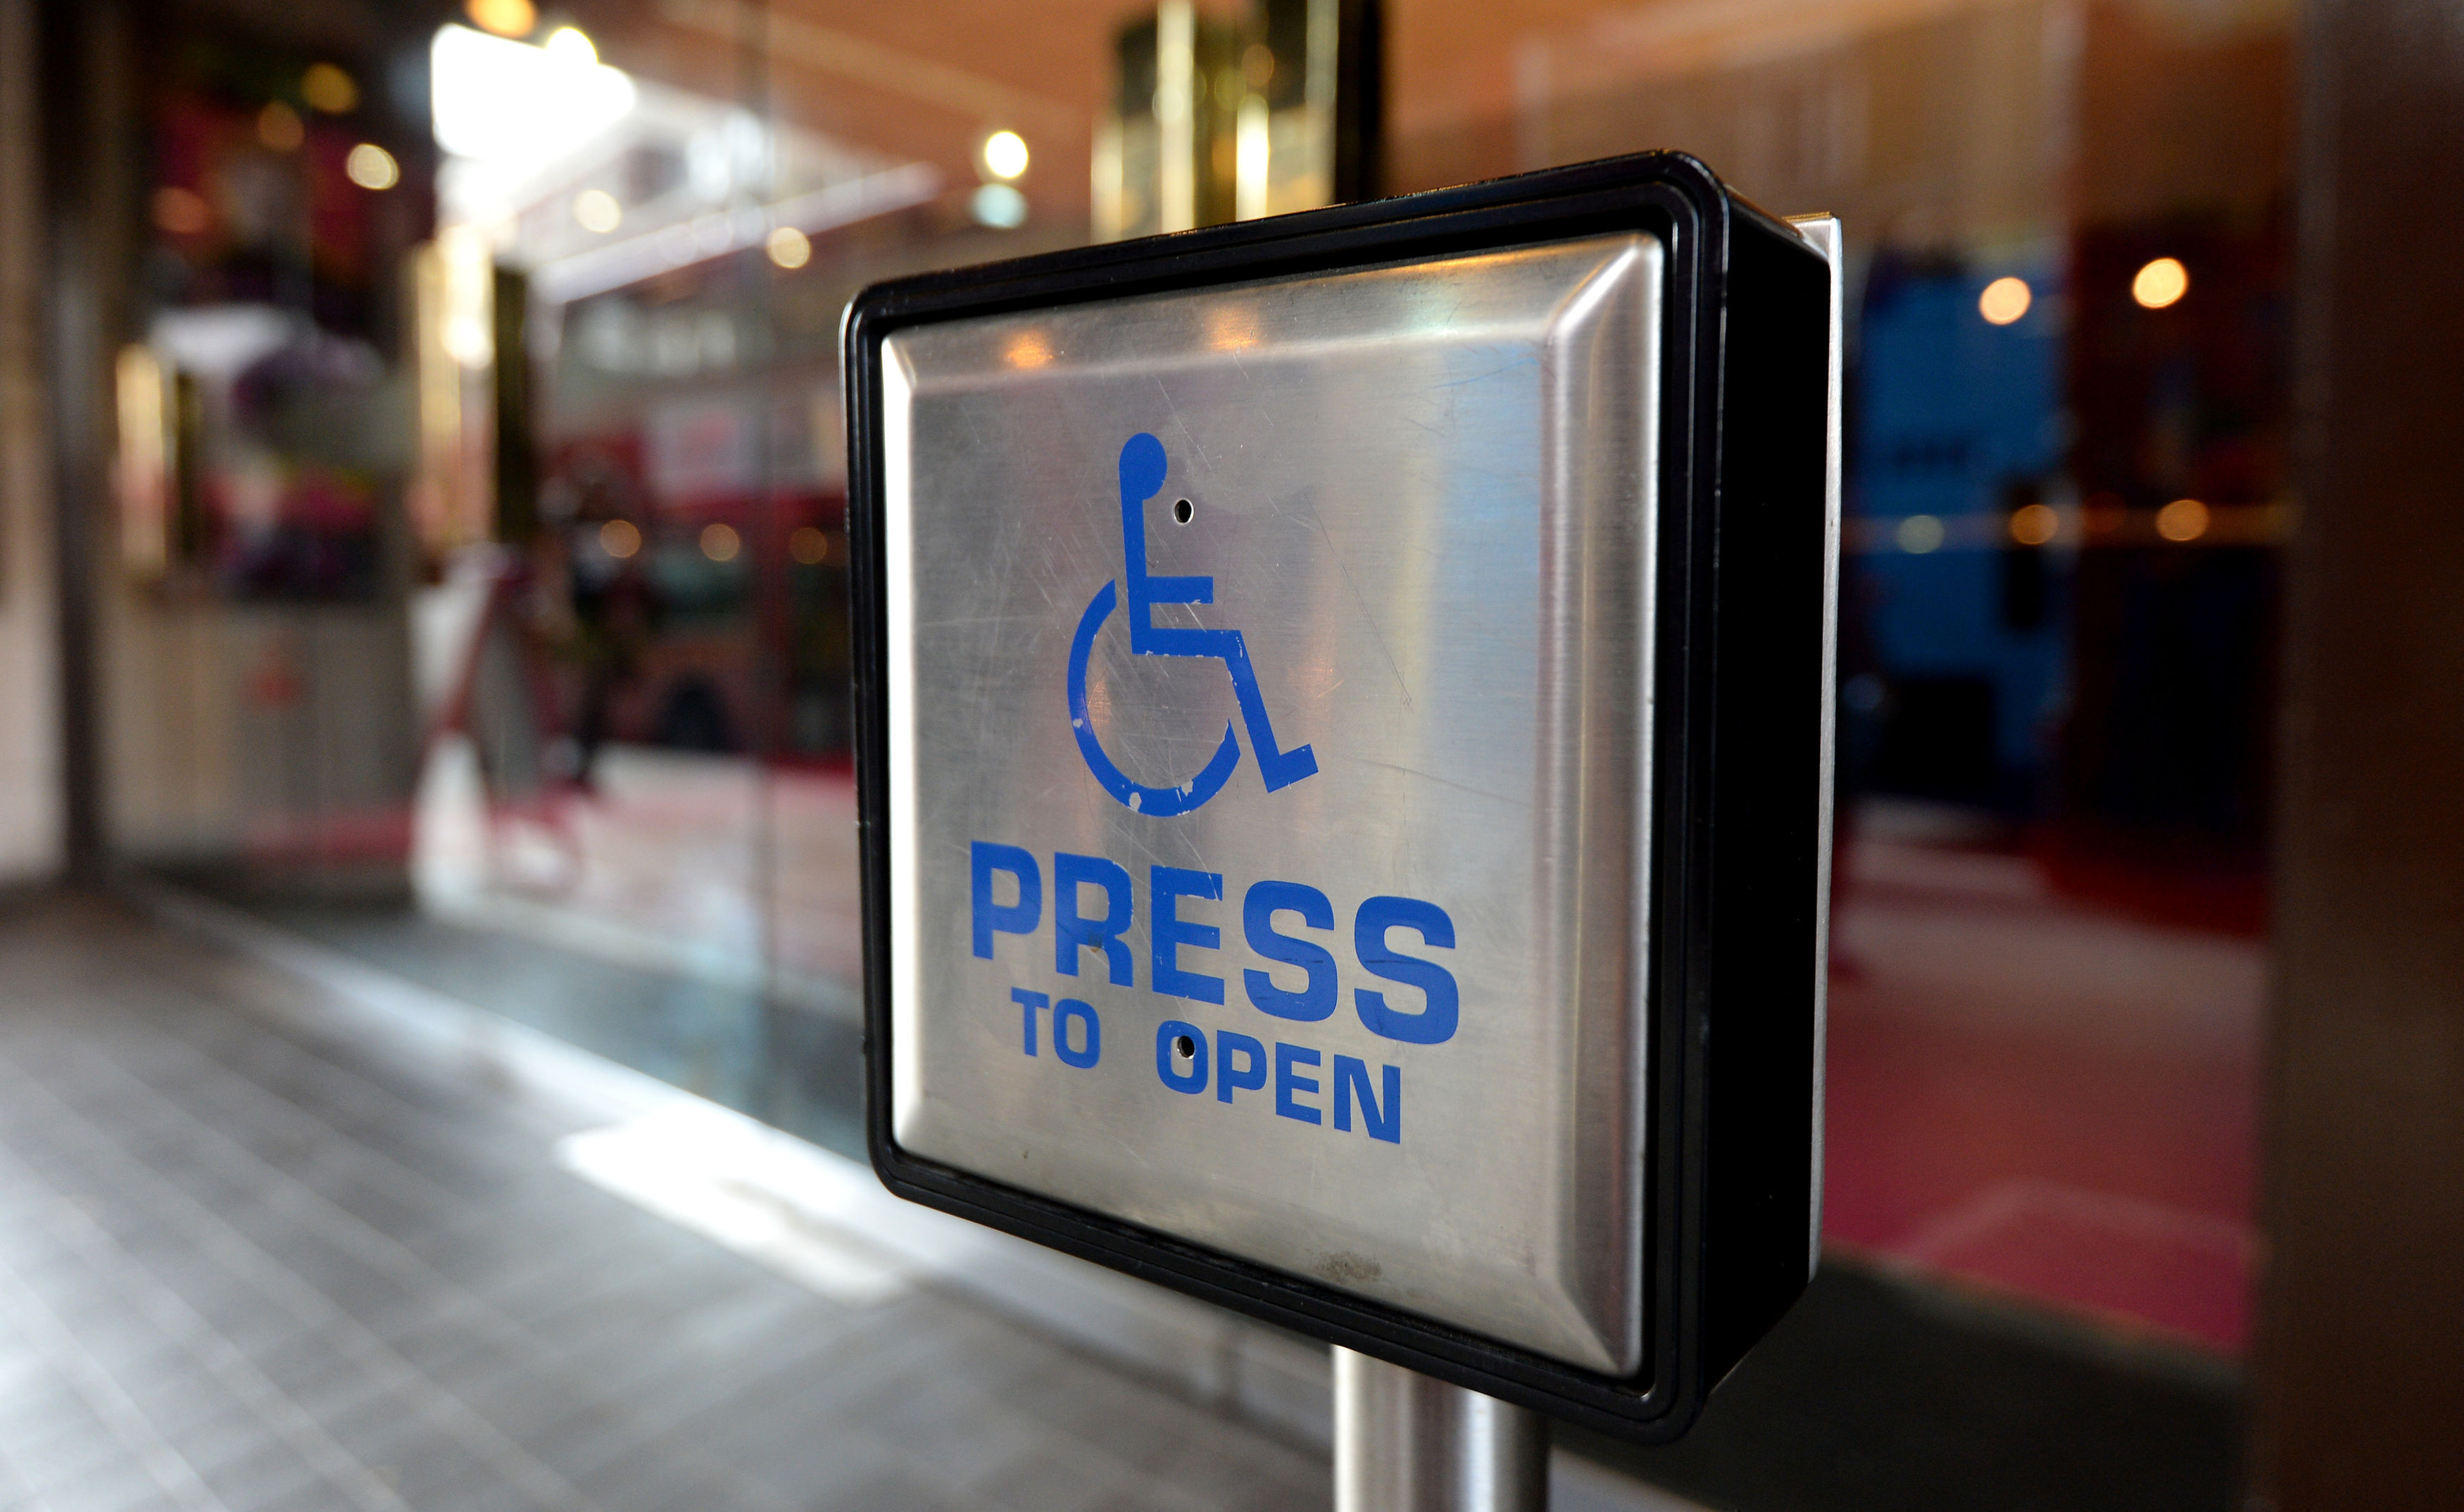 Paralympians Kadeena Cox and Anne Wafula Strike and BBC Radio 1 DJ Scott Mills are among those to have signed the open letter to all the political parties urging them to protect disability benefits from further cuts in the next parliament. (Andrew Matthews/PA Wire)